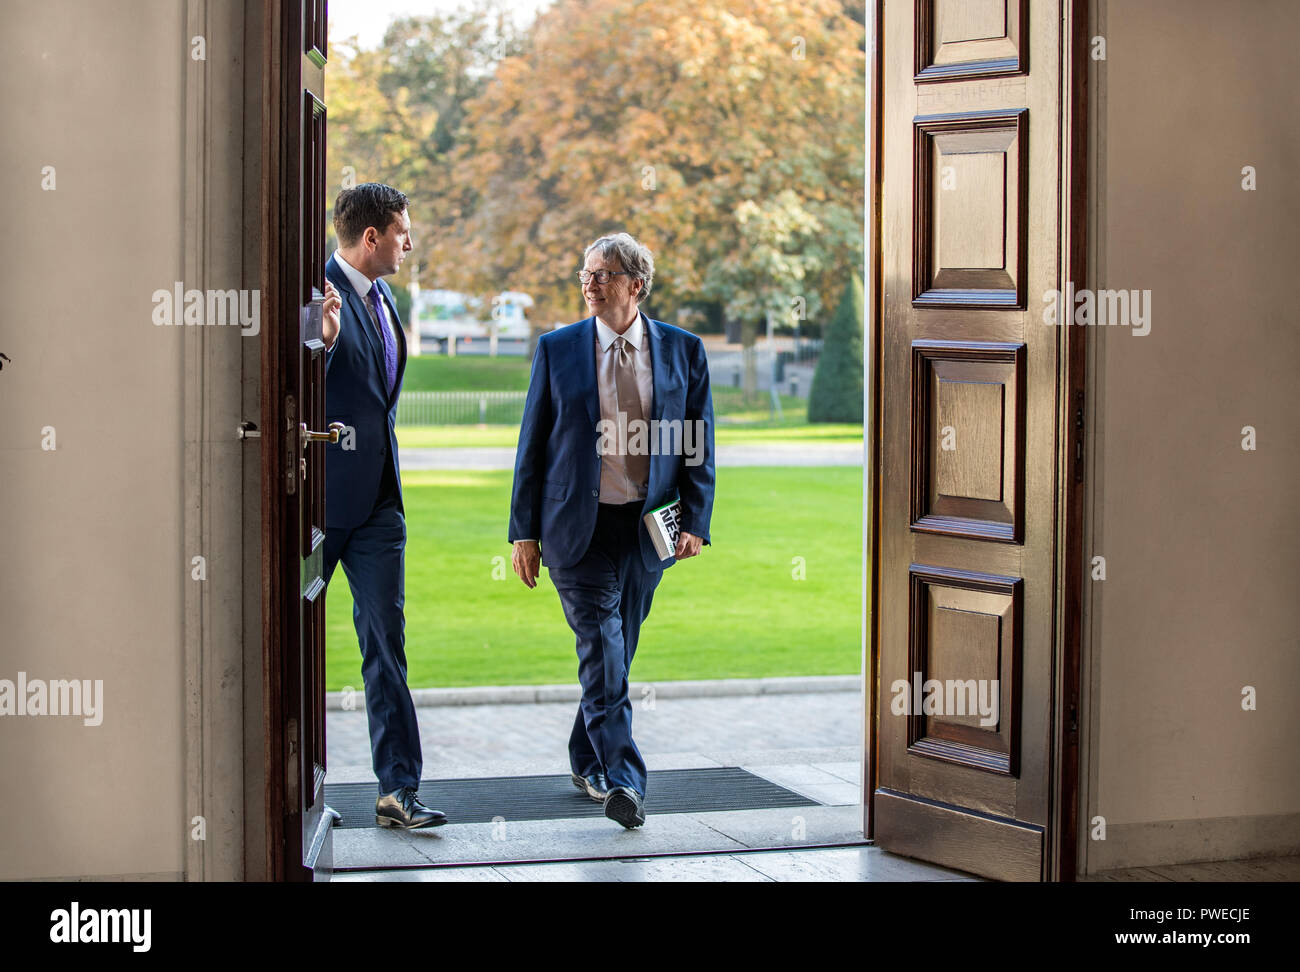 16 October 2018, Berlin: 16 October 2018, Germany, Berlin: Microsoft founder Bill Gates comes to Schloss Bellevue for a conversation with Federal President Steinmeier. The Microsoft founder is currently in Berlin for the annual meeting of the charitable initiative 'Grand Challenges', which he co-founded. Photo: Jens Büttner/dpa-Zentralbild/dpa - Stock Image